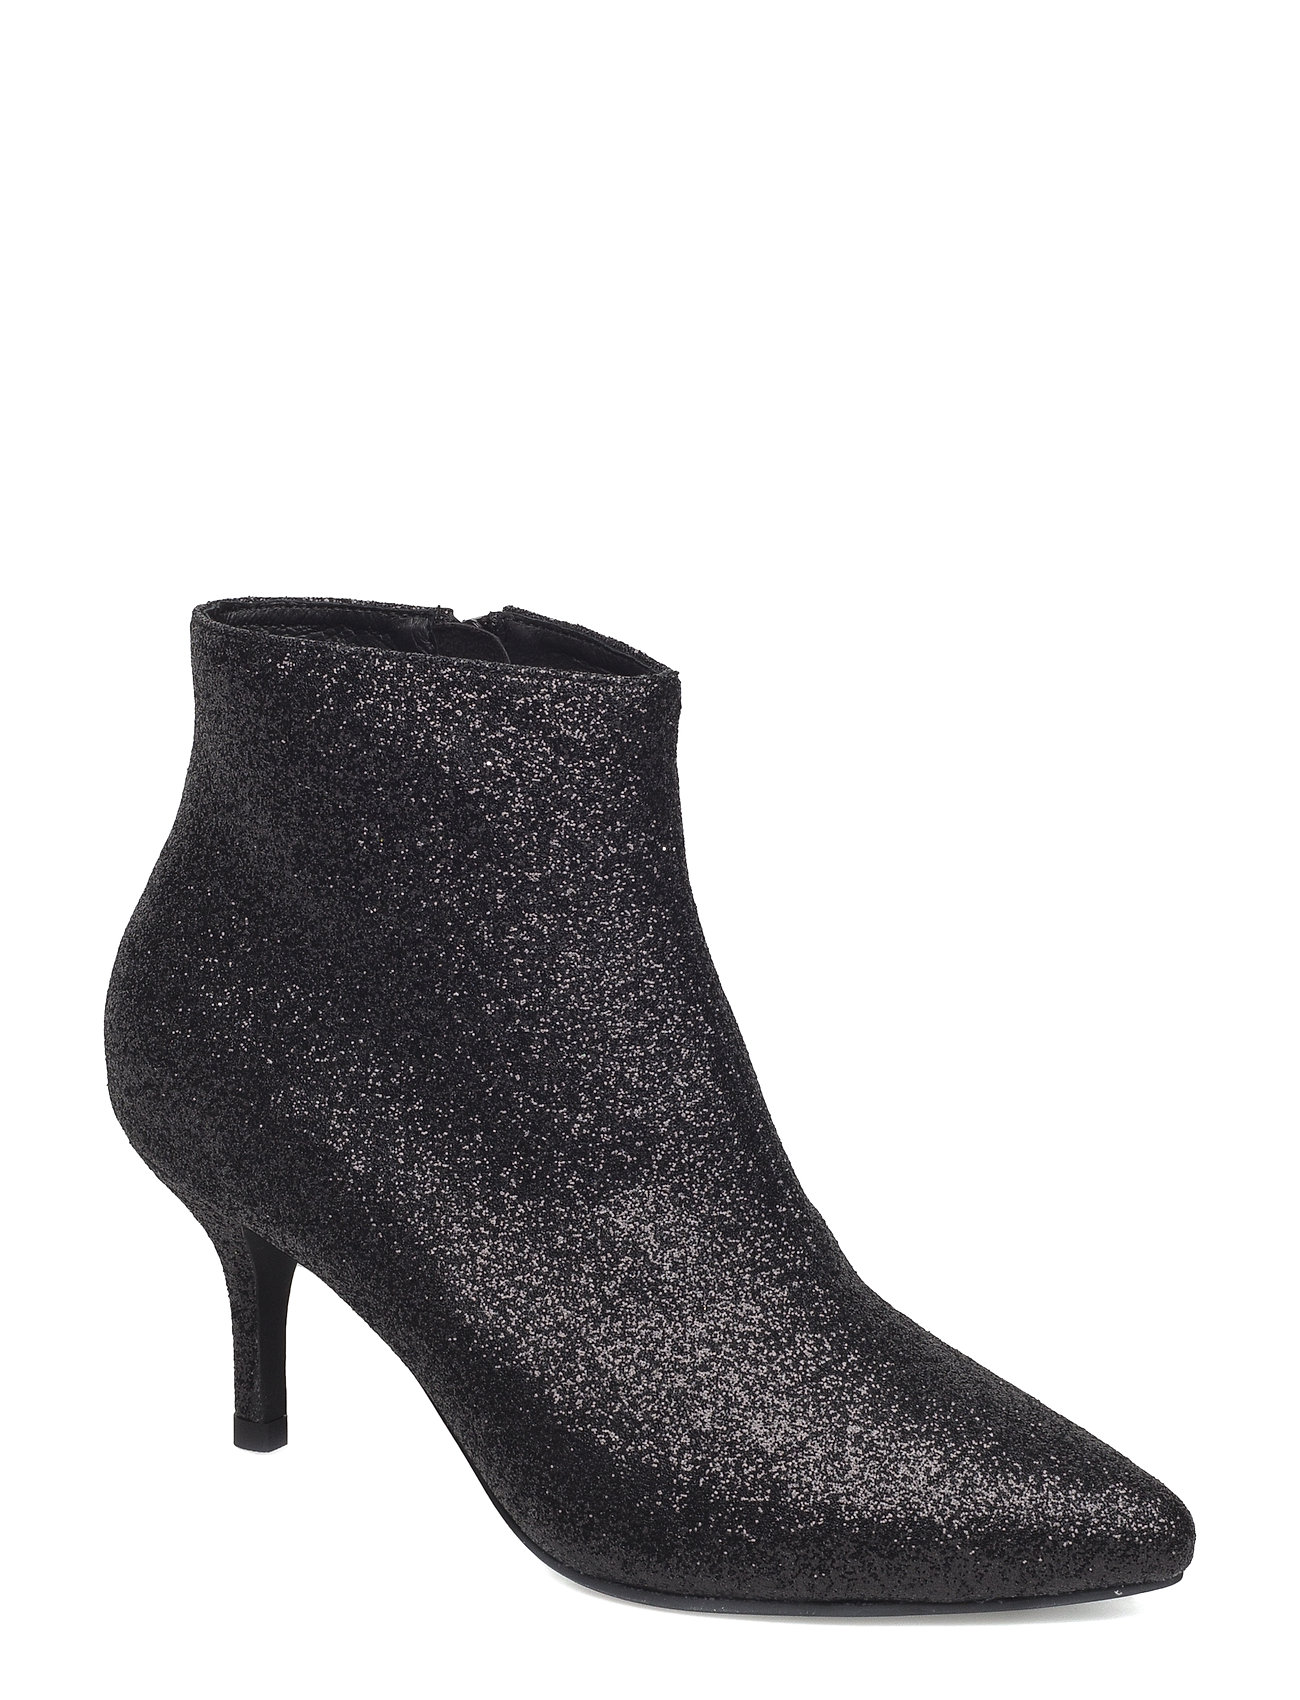 Image of Abby Shoes Boots Ankle Boots Ankle Boot - Heel Sort Shoe The Bear (3333153307)